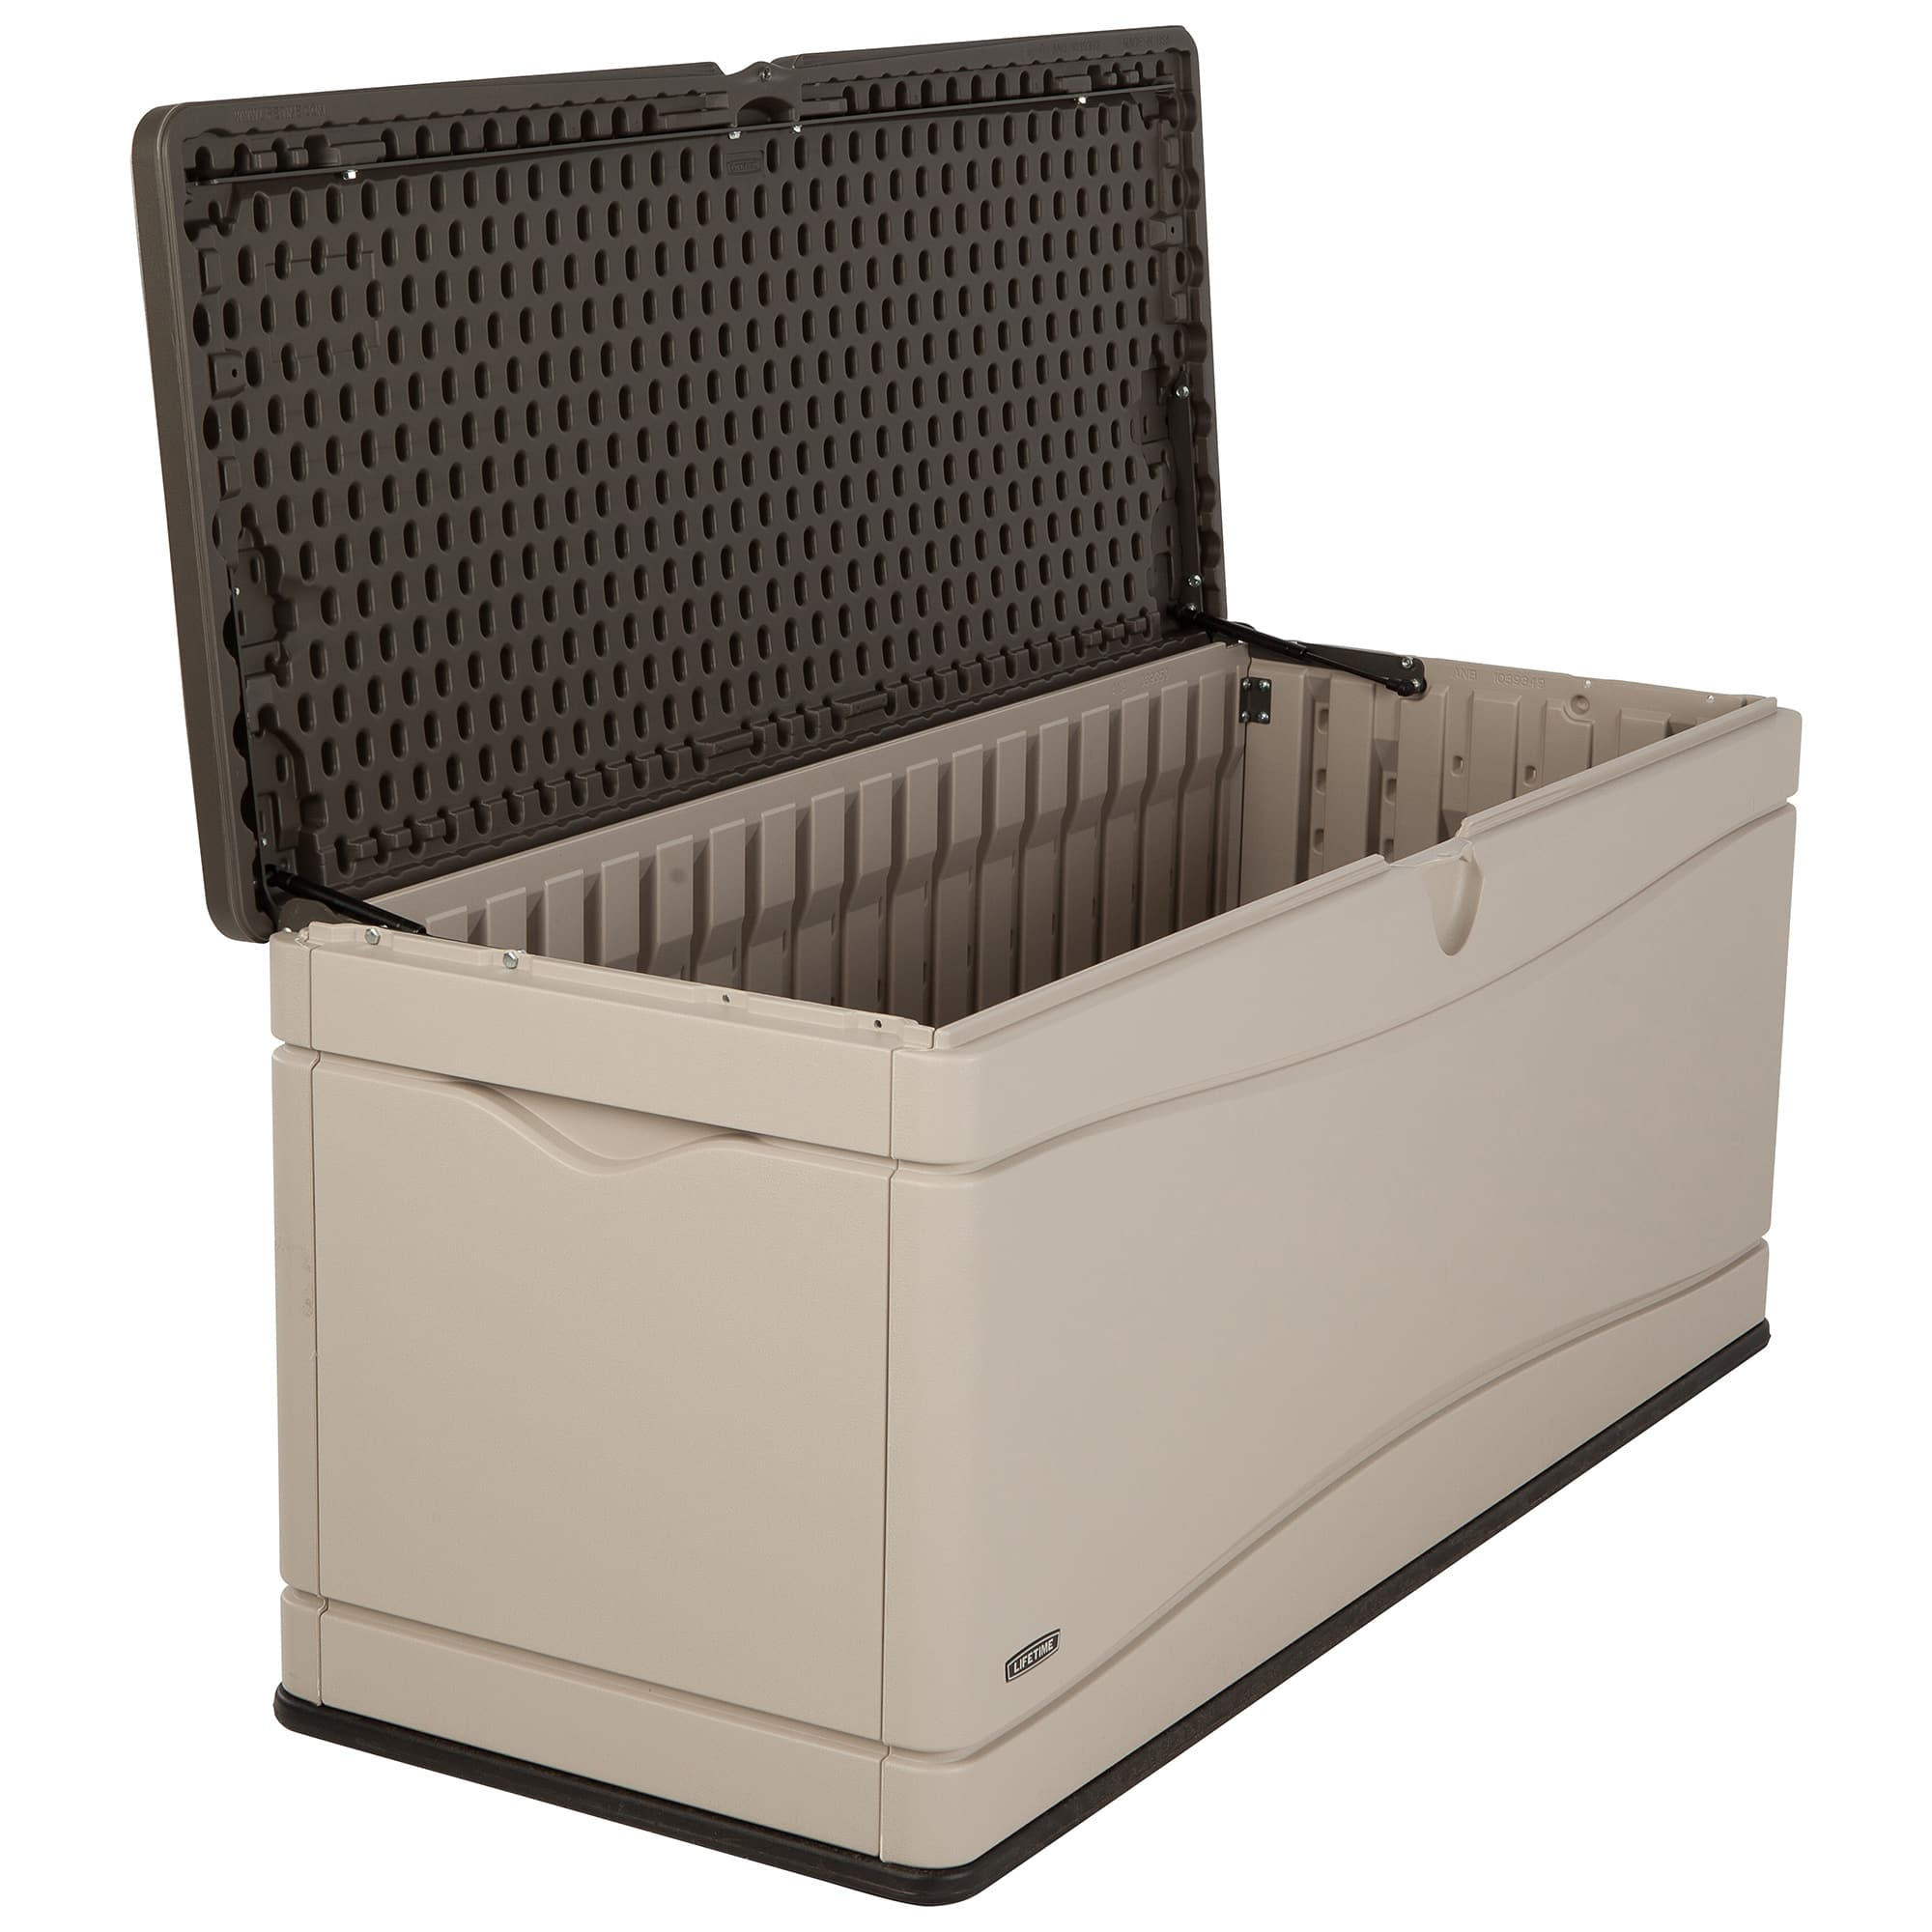 Lifetime 60012 Extra Large 130 Gallon Deck Box $120.95 HD and Amazon